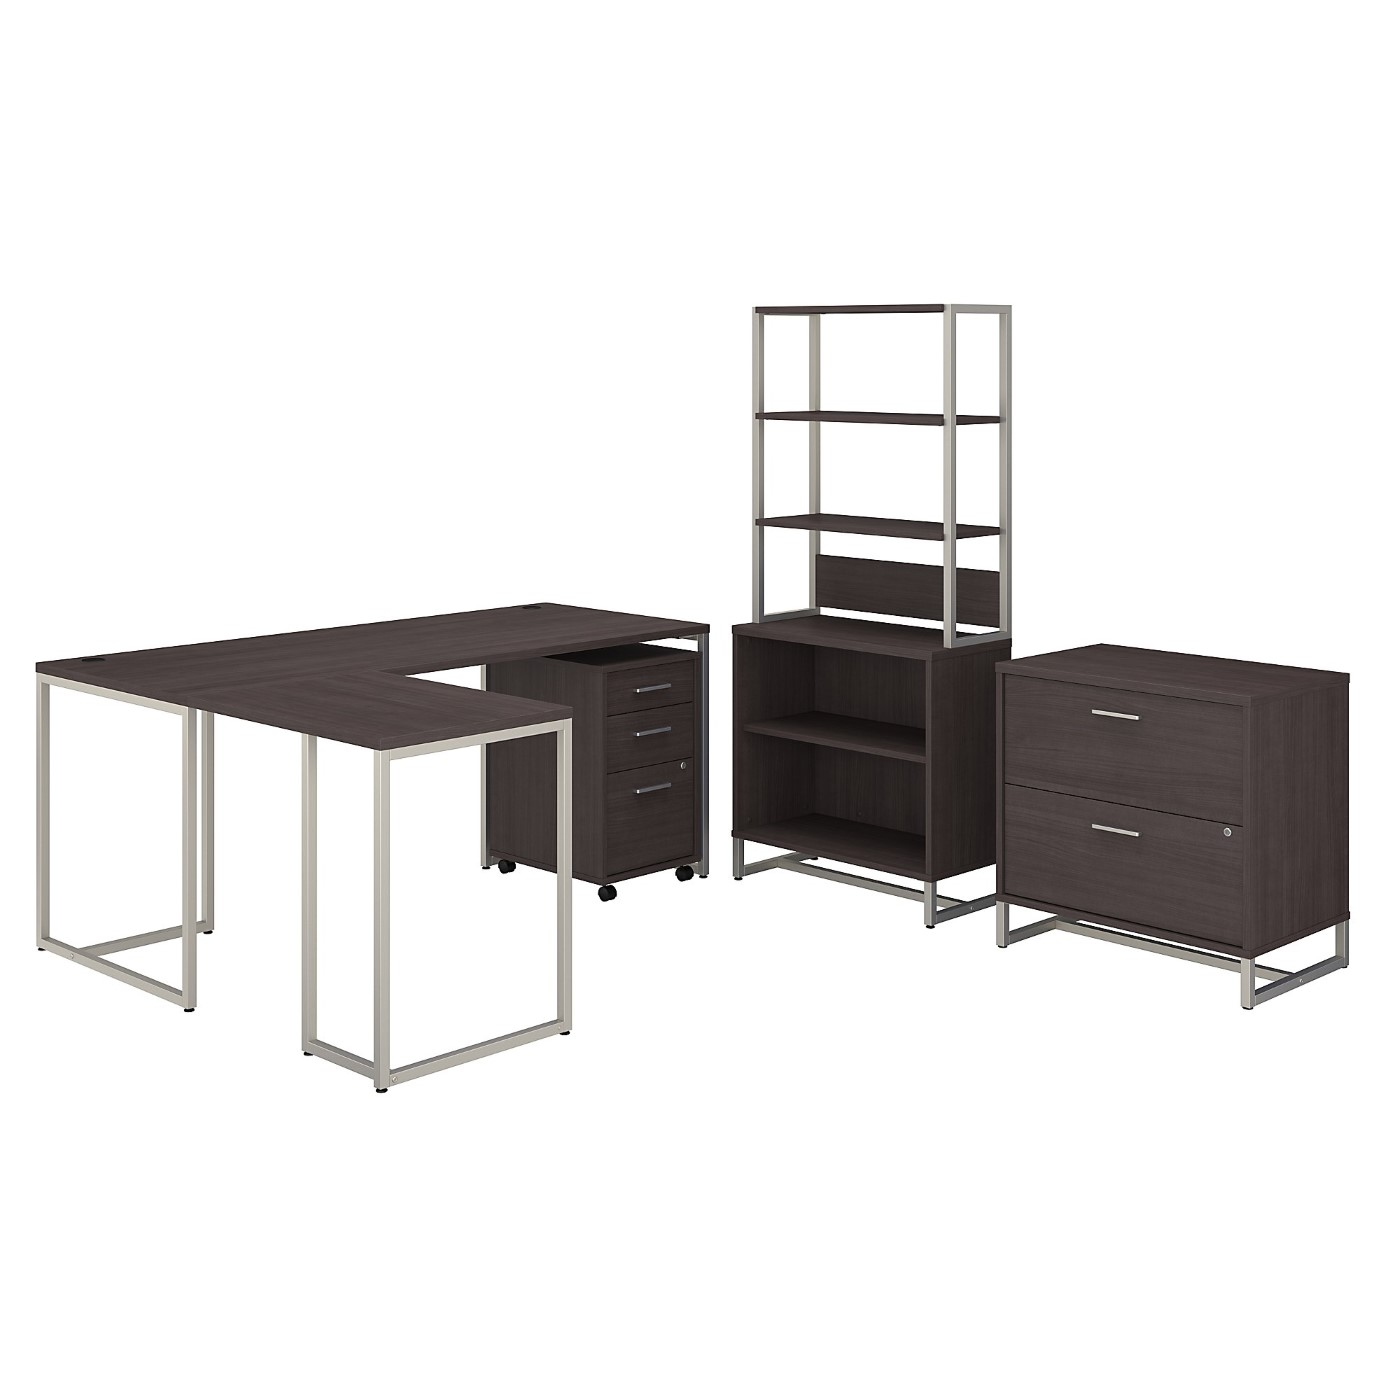 OFFICE BY KATHY IRELAND® METHOD 72W L SHAPED DESK WITH 30W RETURN, FILE CABINETS AND BOOKCASE. FREE SHIPPING SALE DEDUCT 10% MORE ENTER '10percent' IN COUPON CODE BOX WHILE CHECKING OUT.